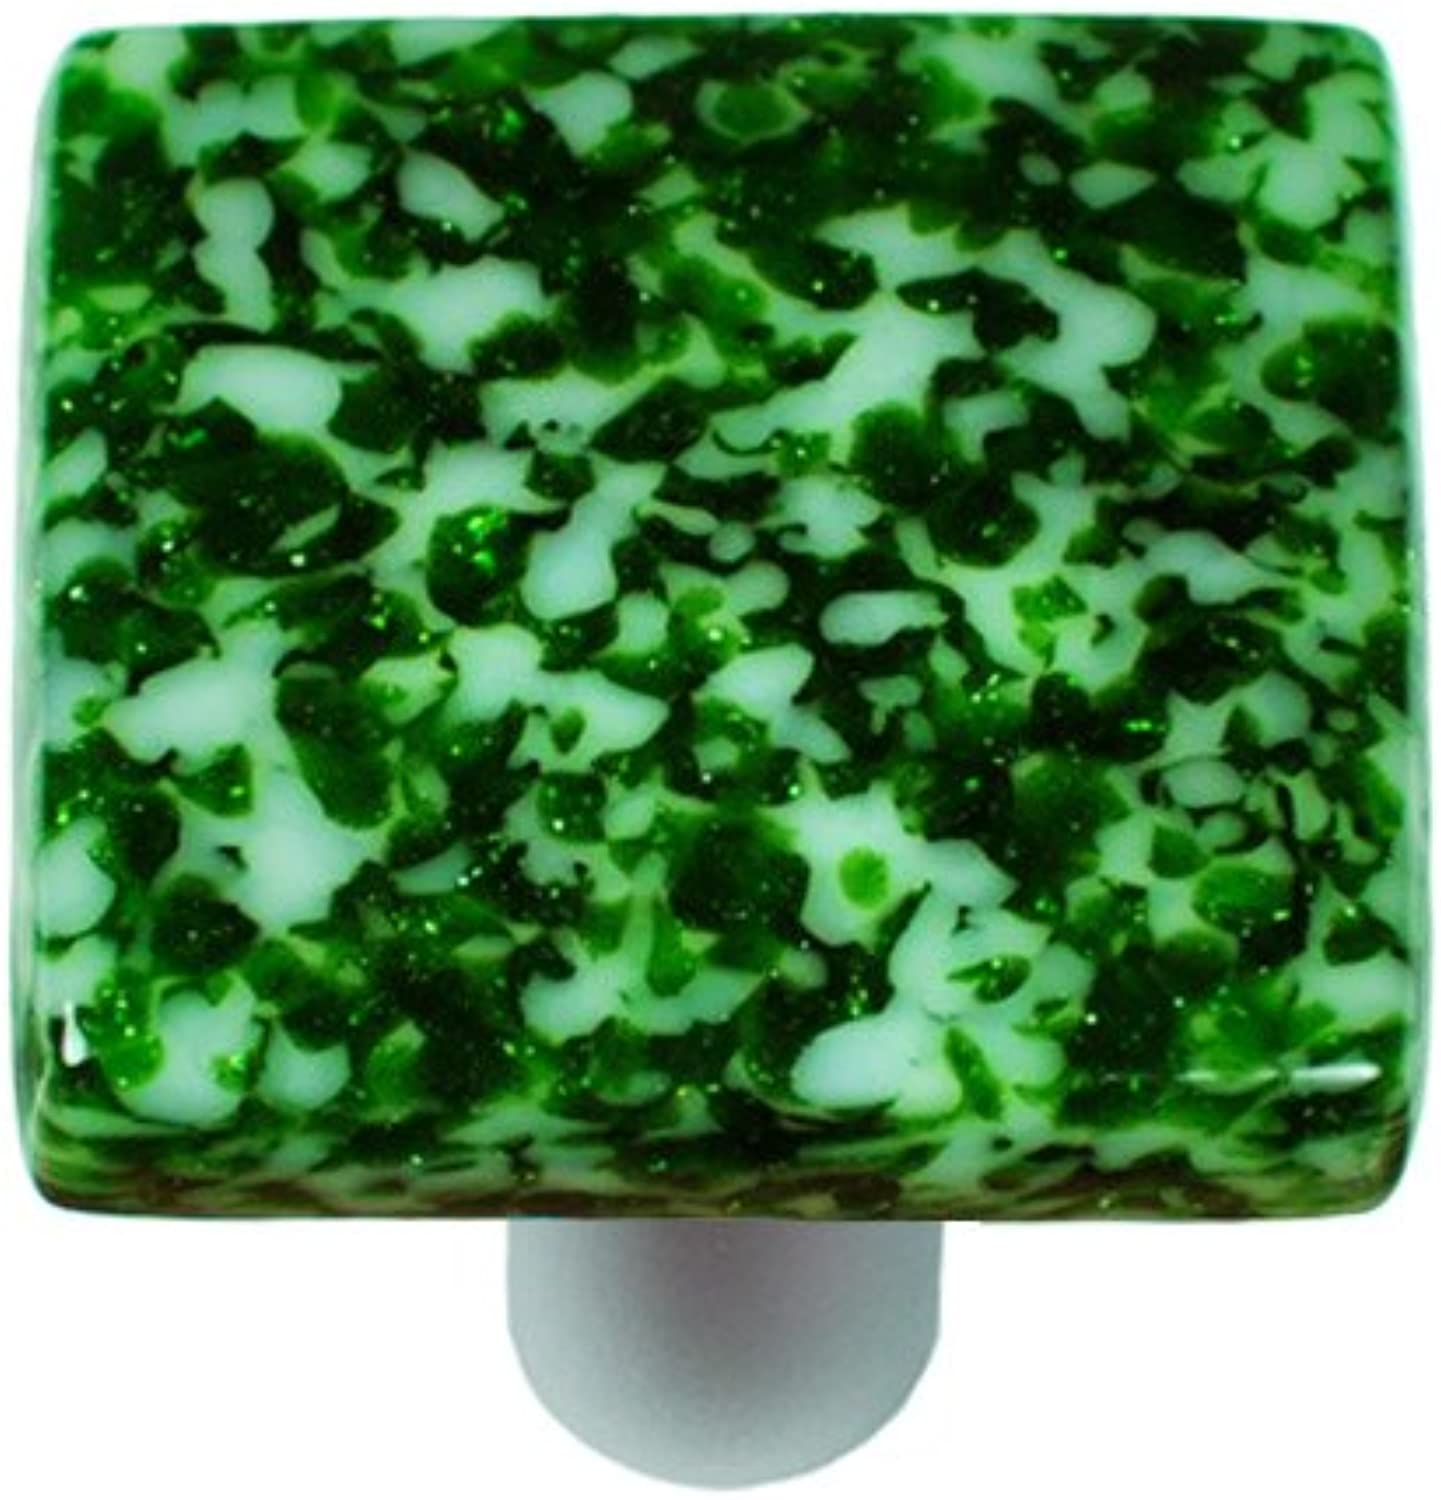 Hot Knobs HK8053-KA Granite Light Metallic Green & White Square Glass Cabinet Knob - Aluminum Post